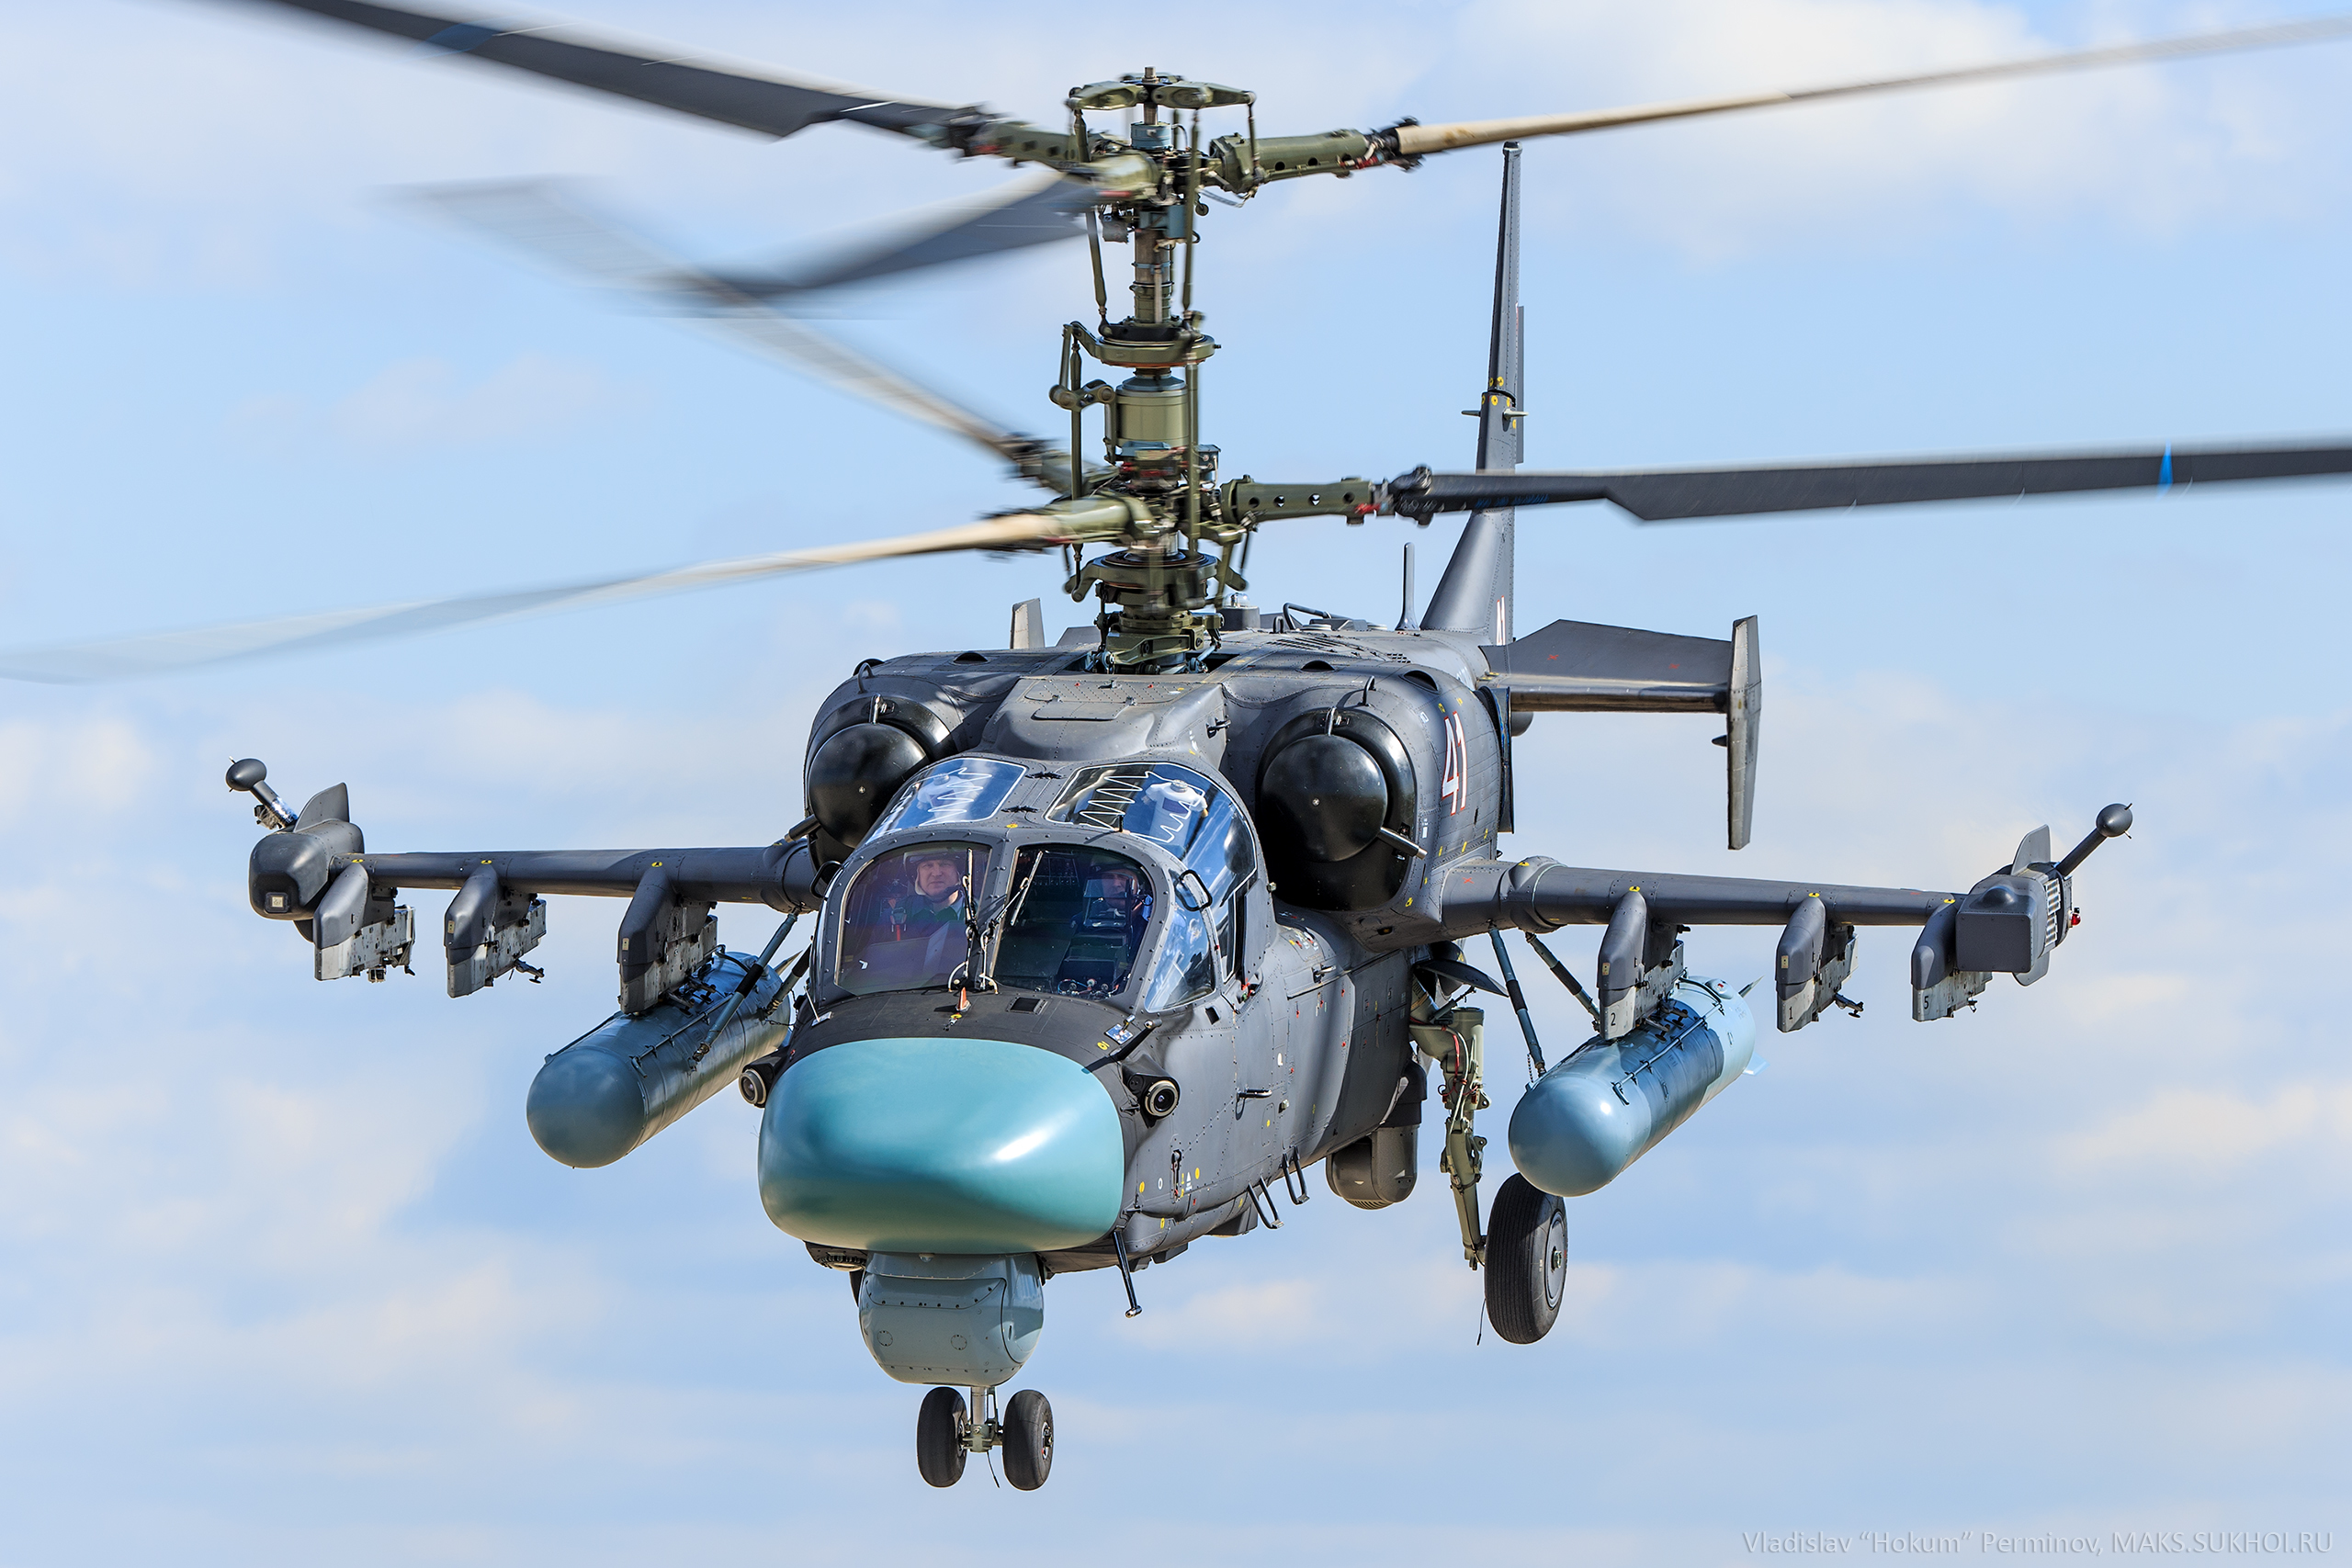 3 Kamov Ka-52 Hokum-B most powerful military helicopters